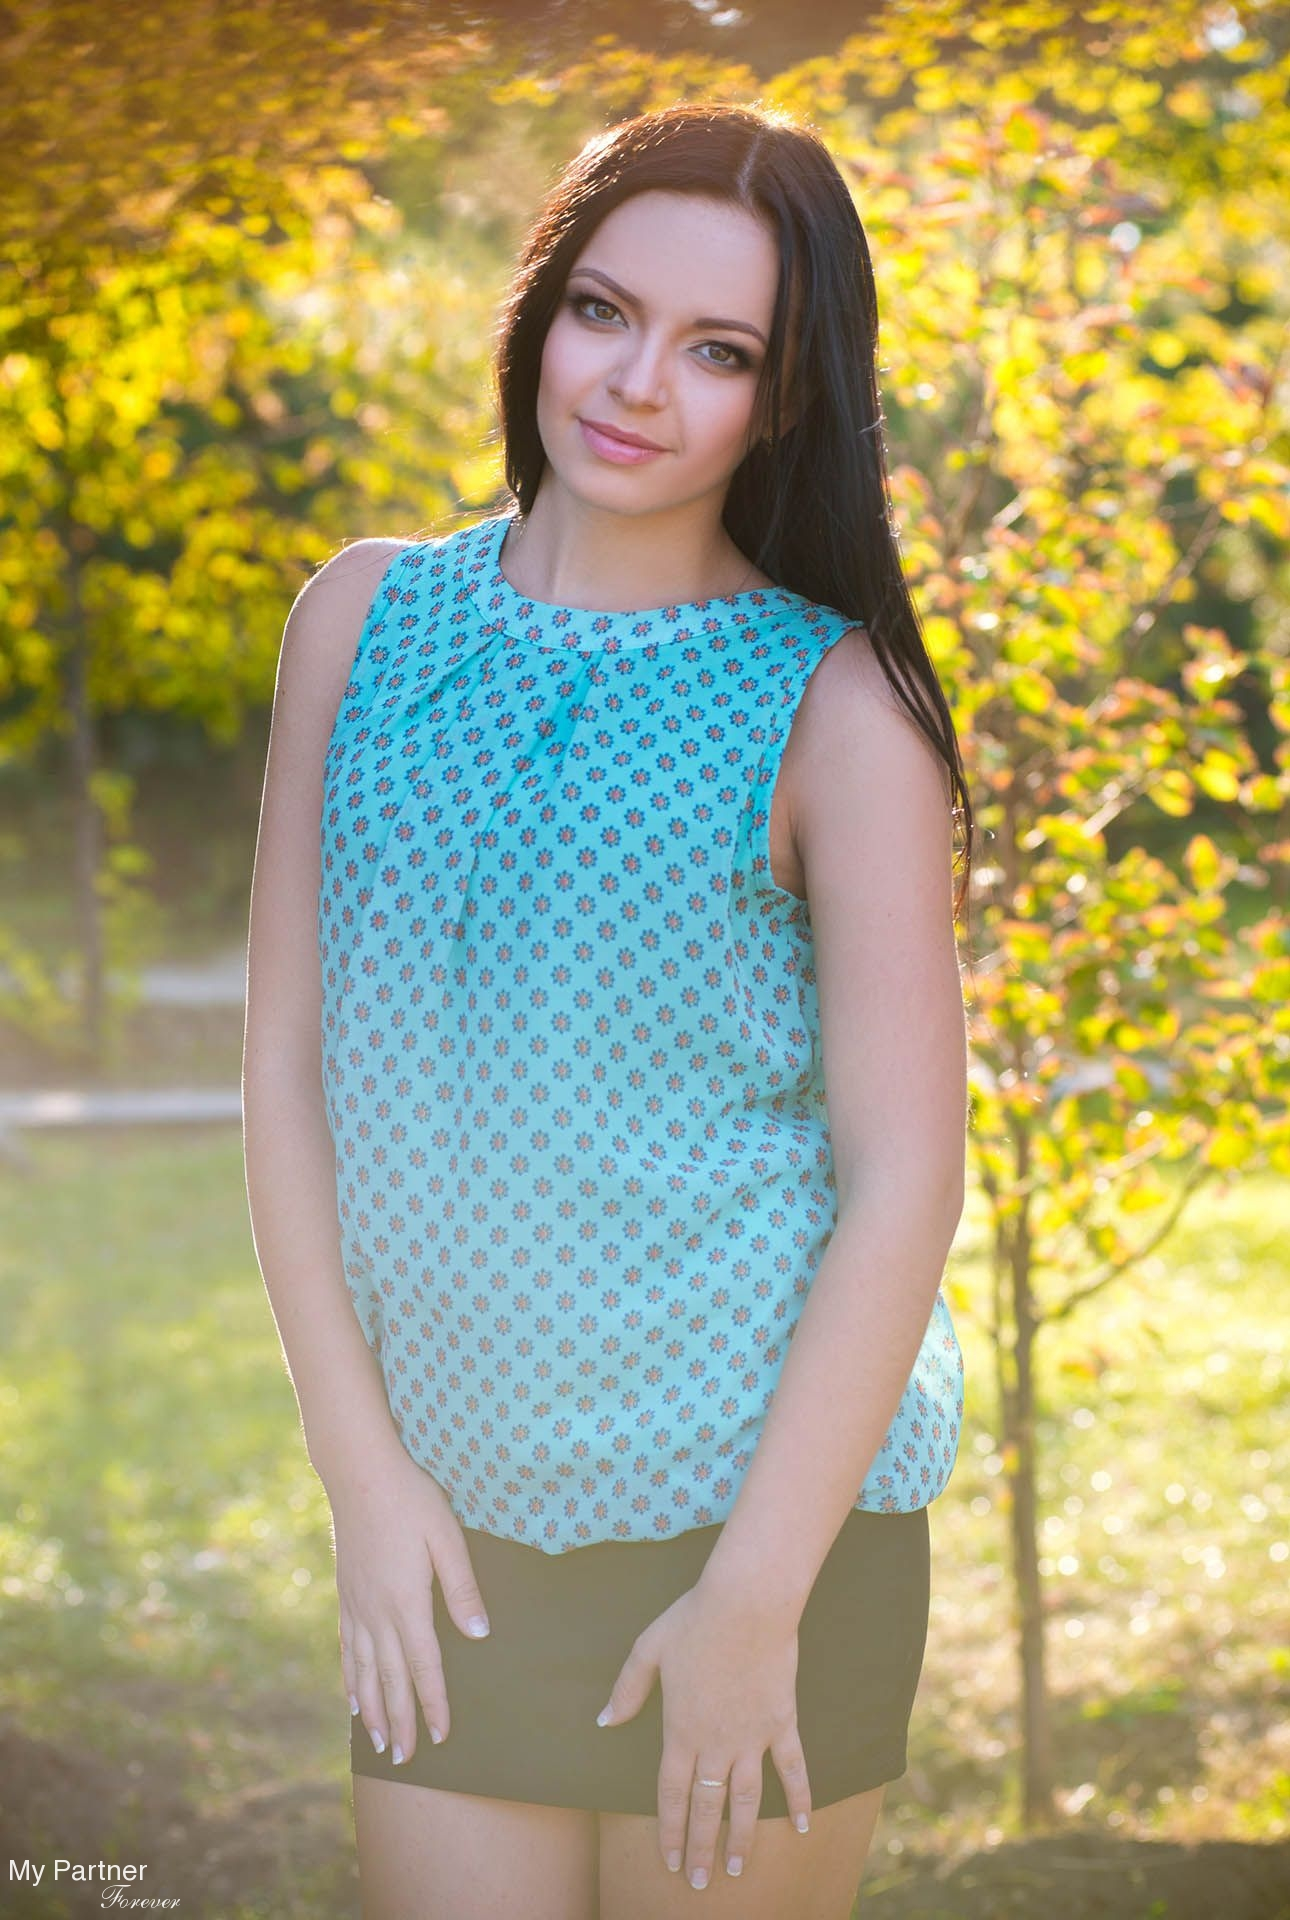 Stunning Bride from Ukraine - Karina from Zaporozhye, Ukraine